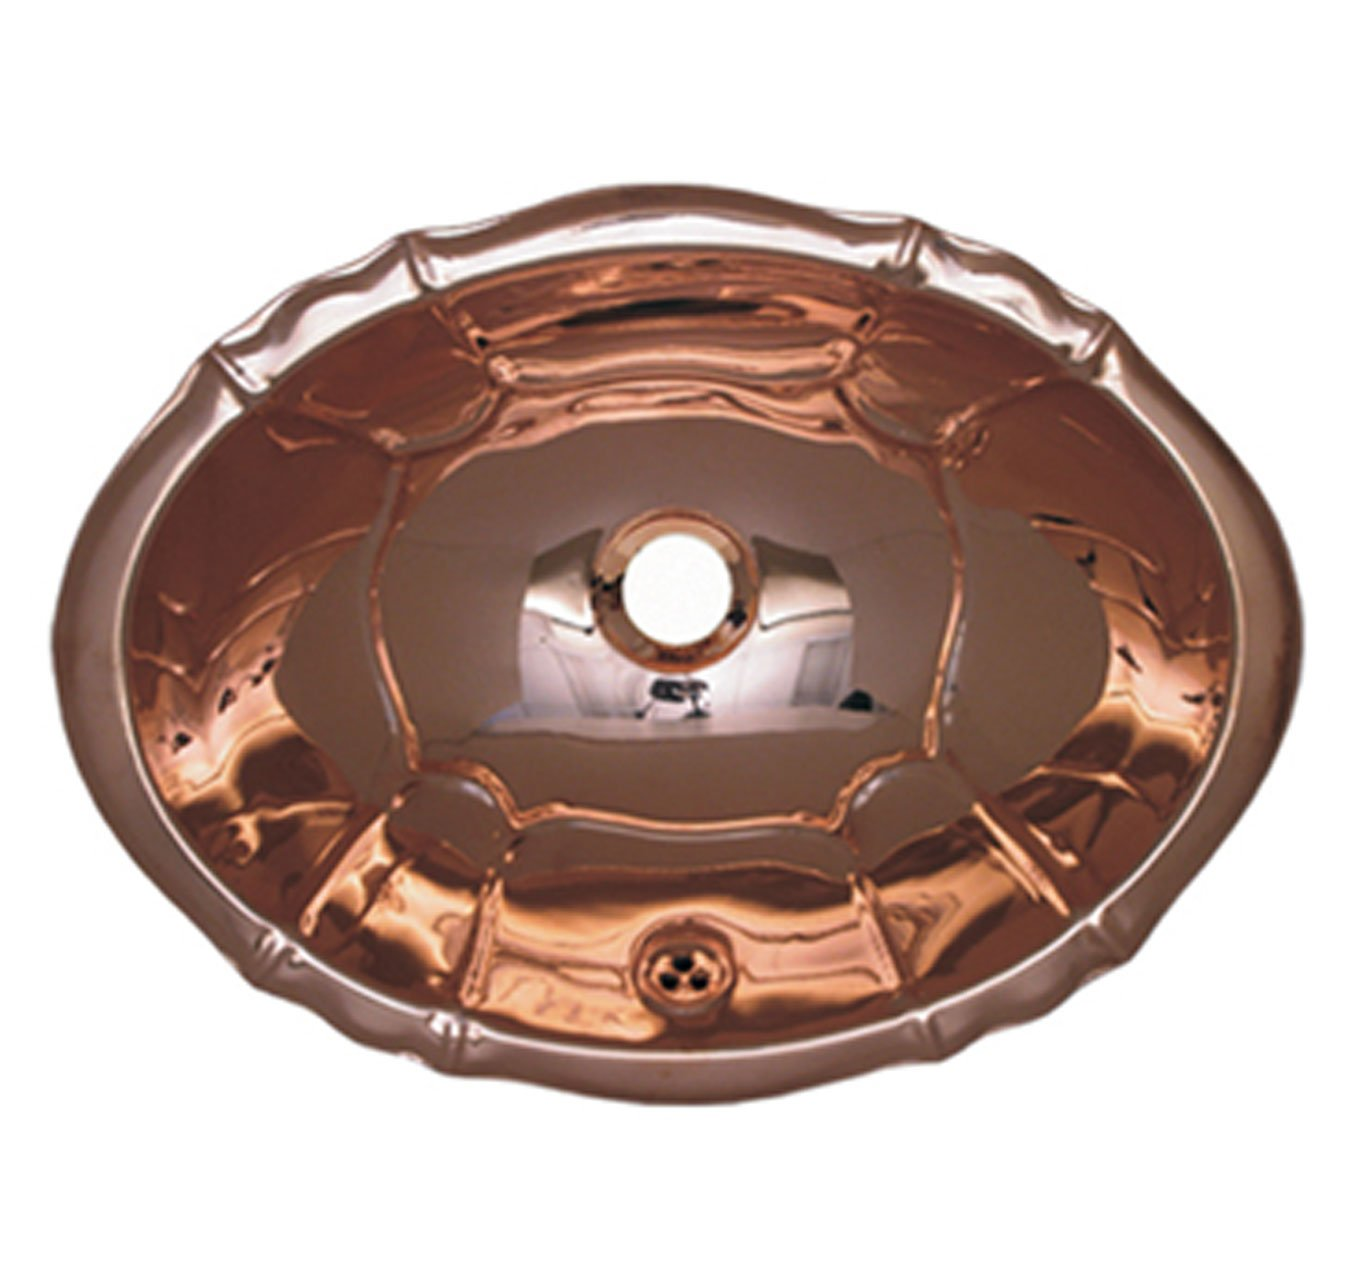 Whitehaus WH612CBL-PCO Fluted Design Drop-In Basin with Overflow, Polished Copper